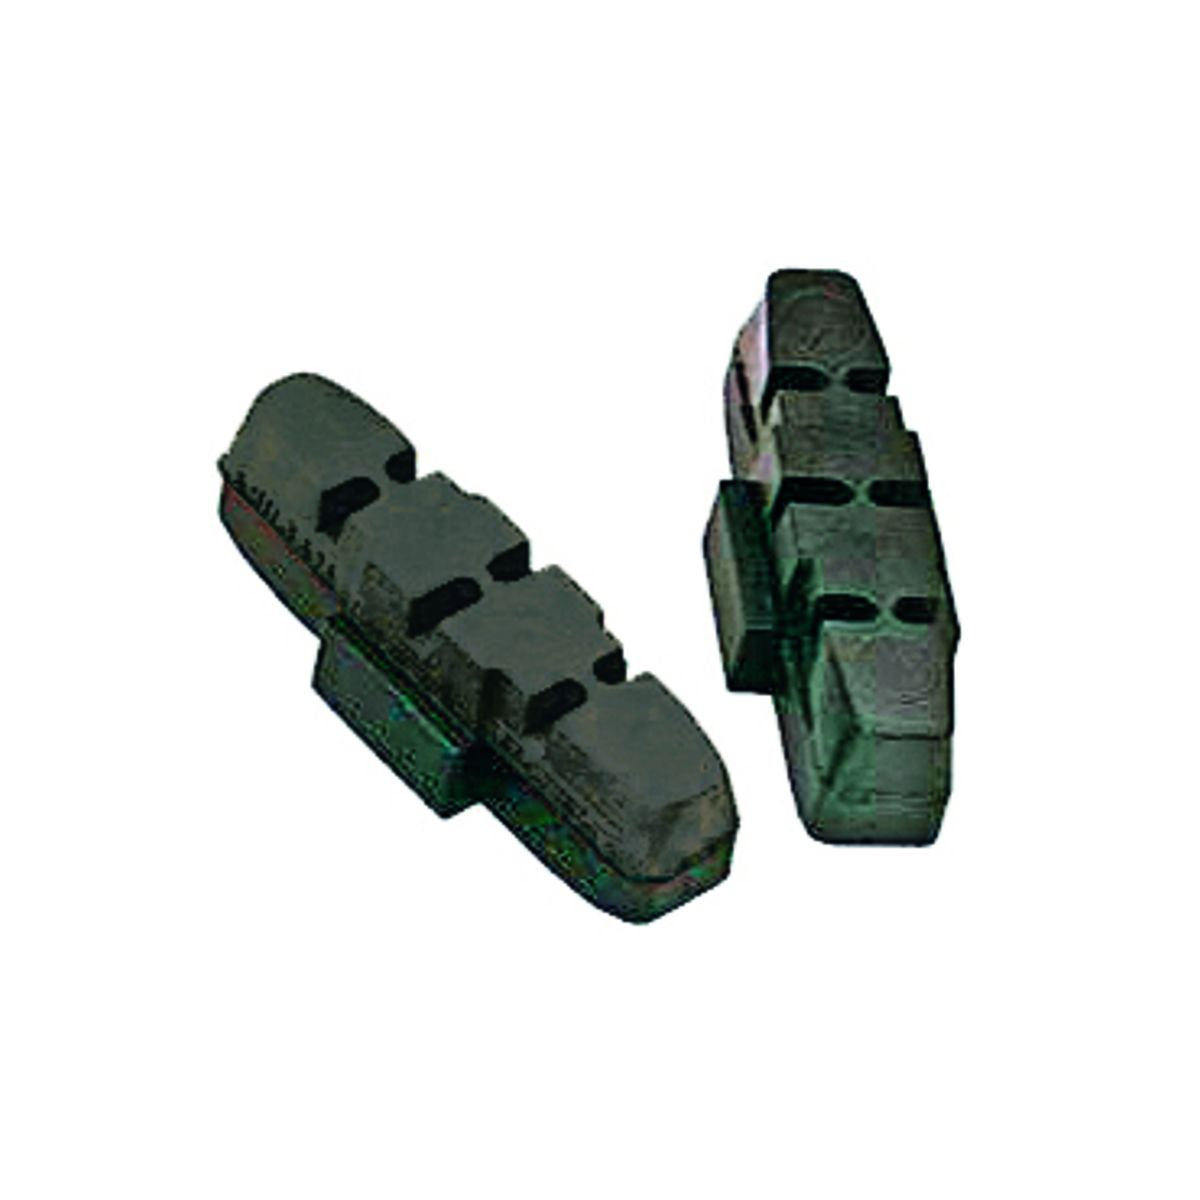 Brake Pads for Alloy Rims for HS Brakes